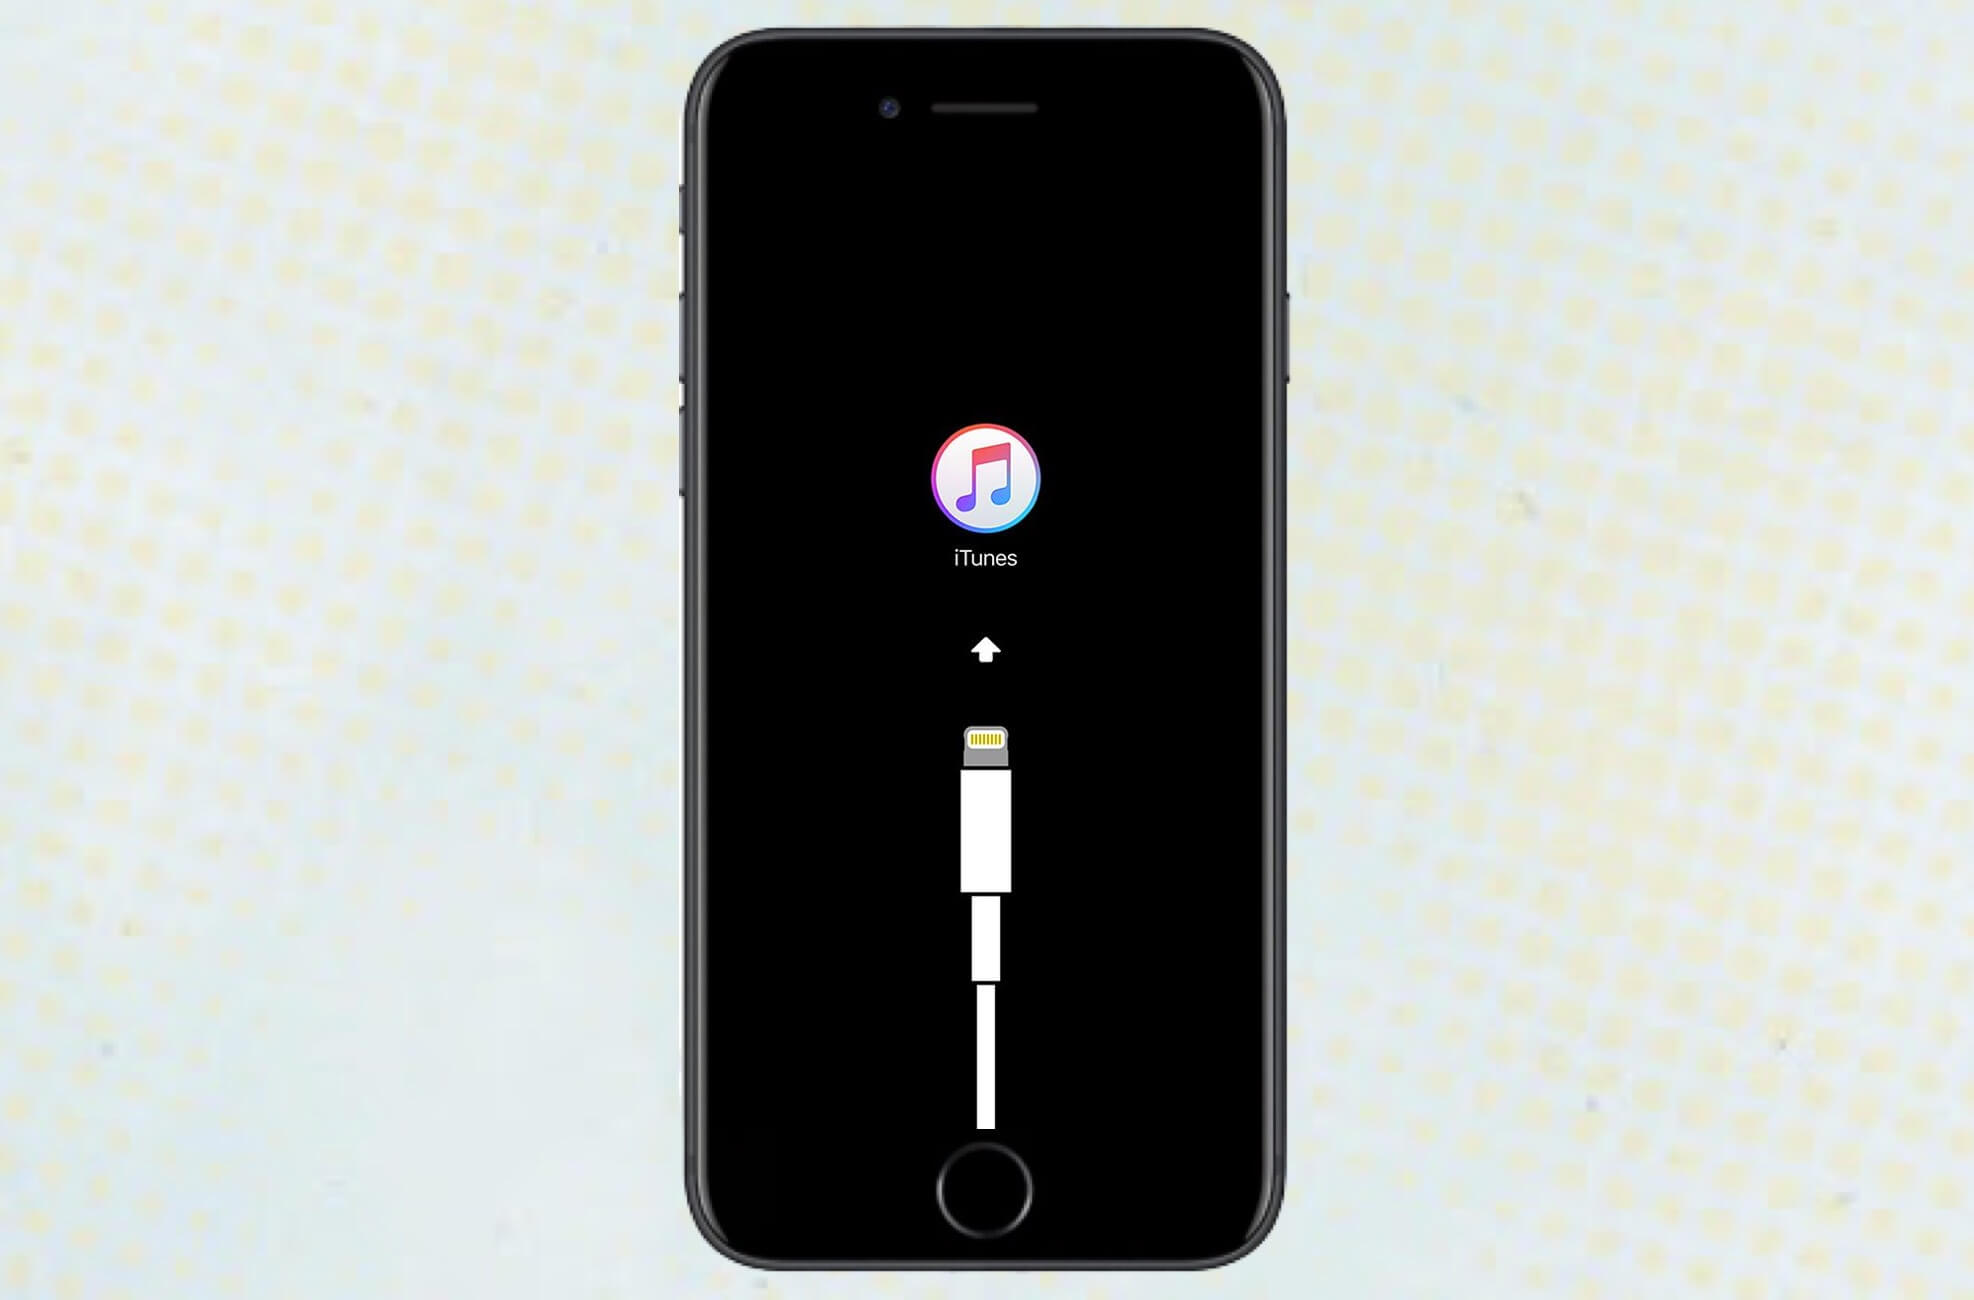 Put iPhone 7 into Recovery Mode